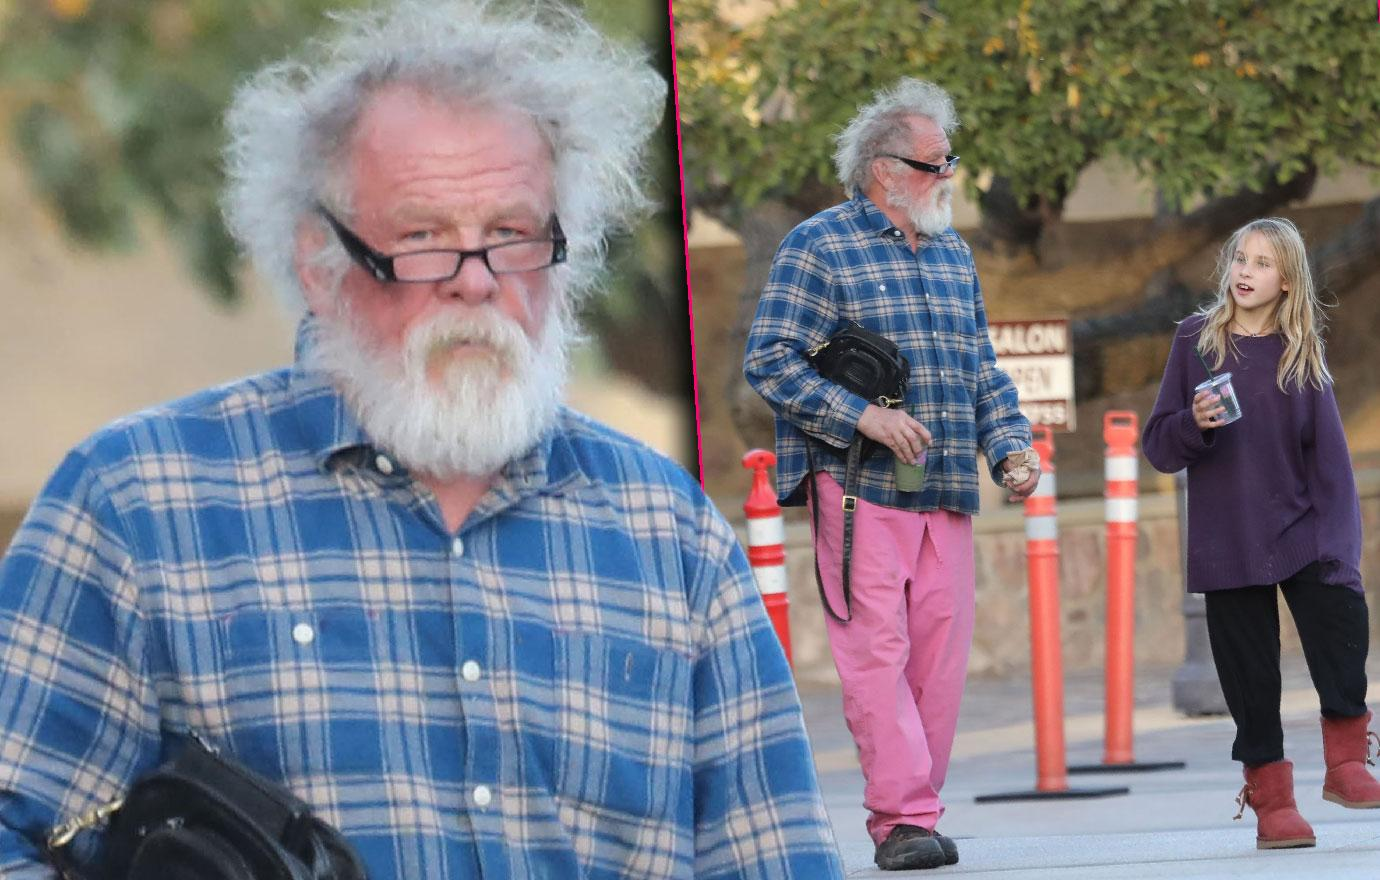 Nick Nolte Looks Like Santa Claus With Daughter